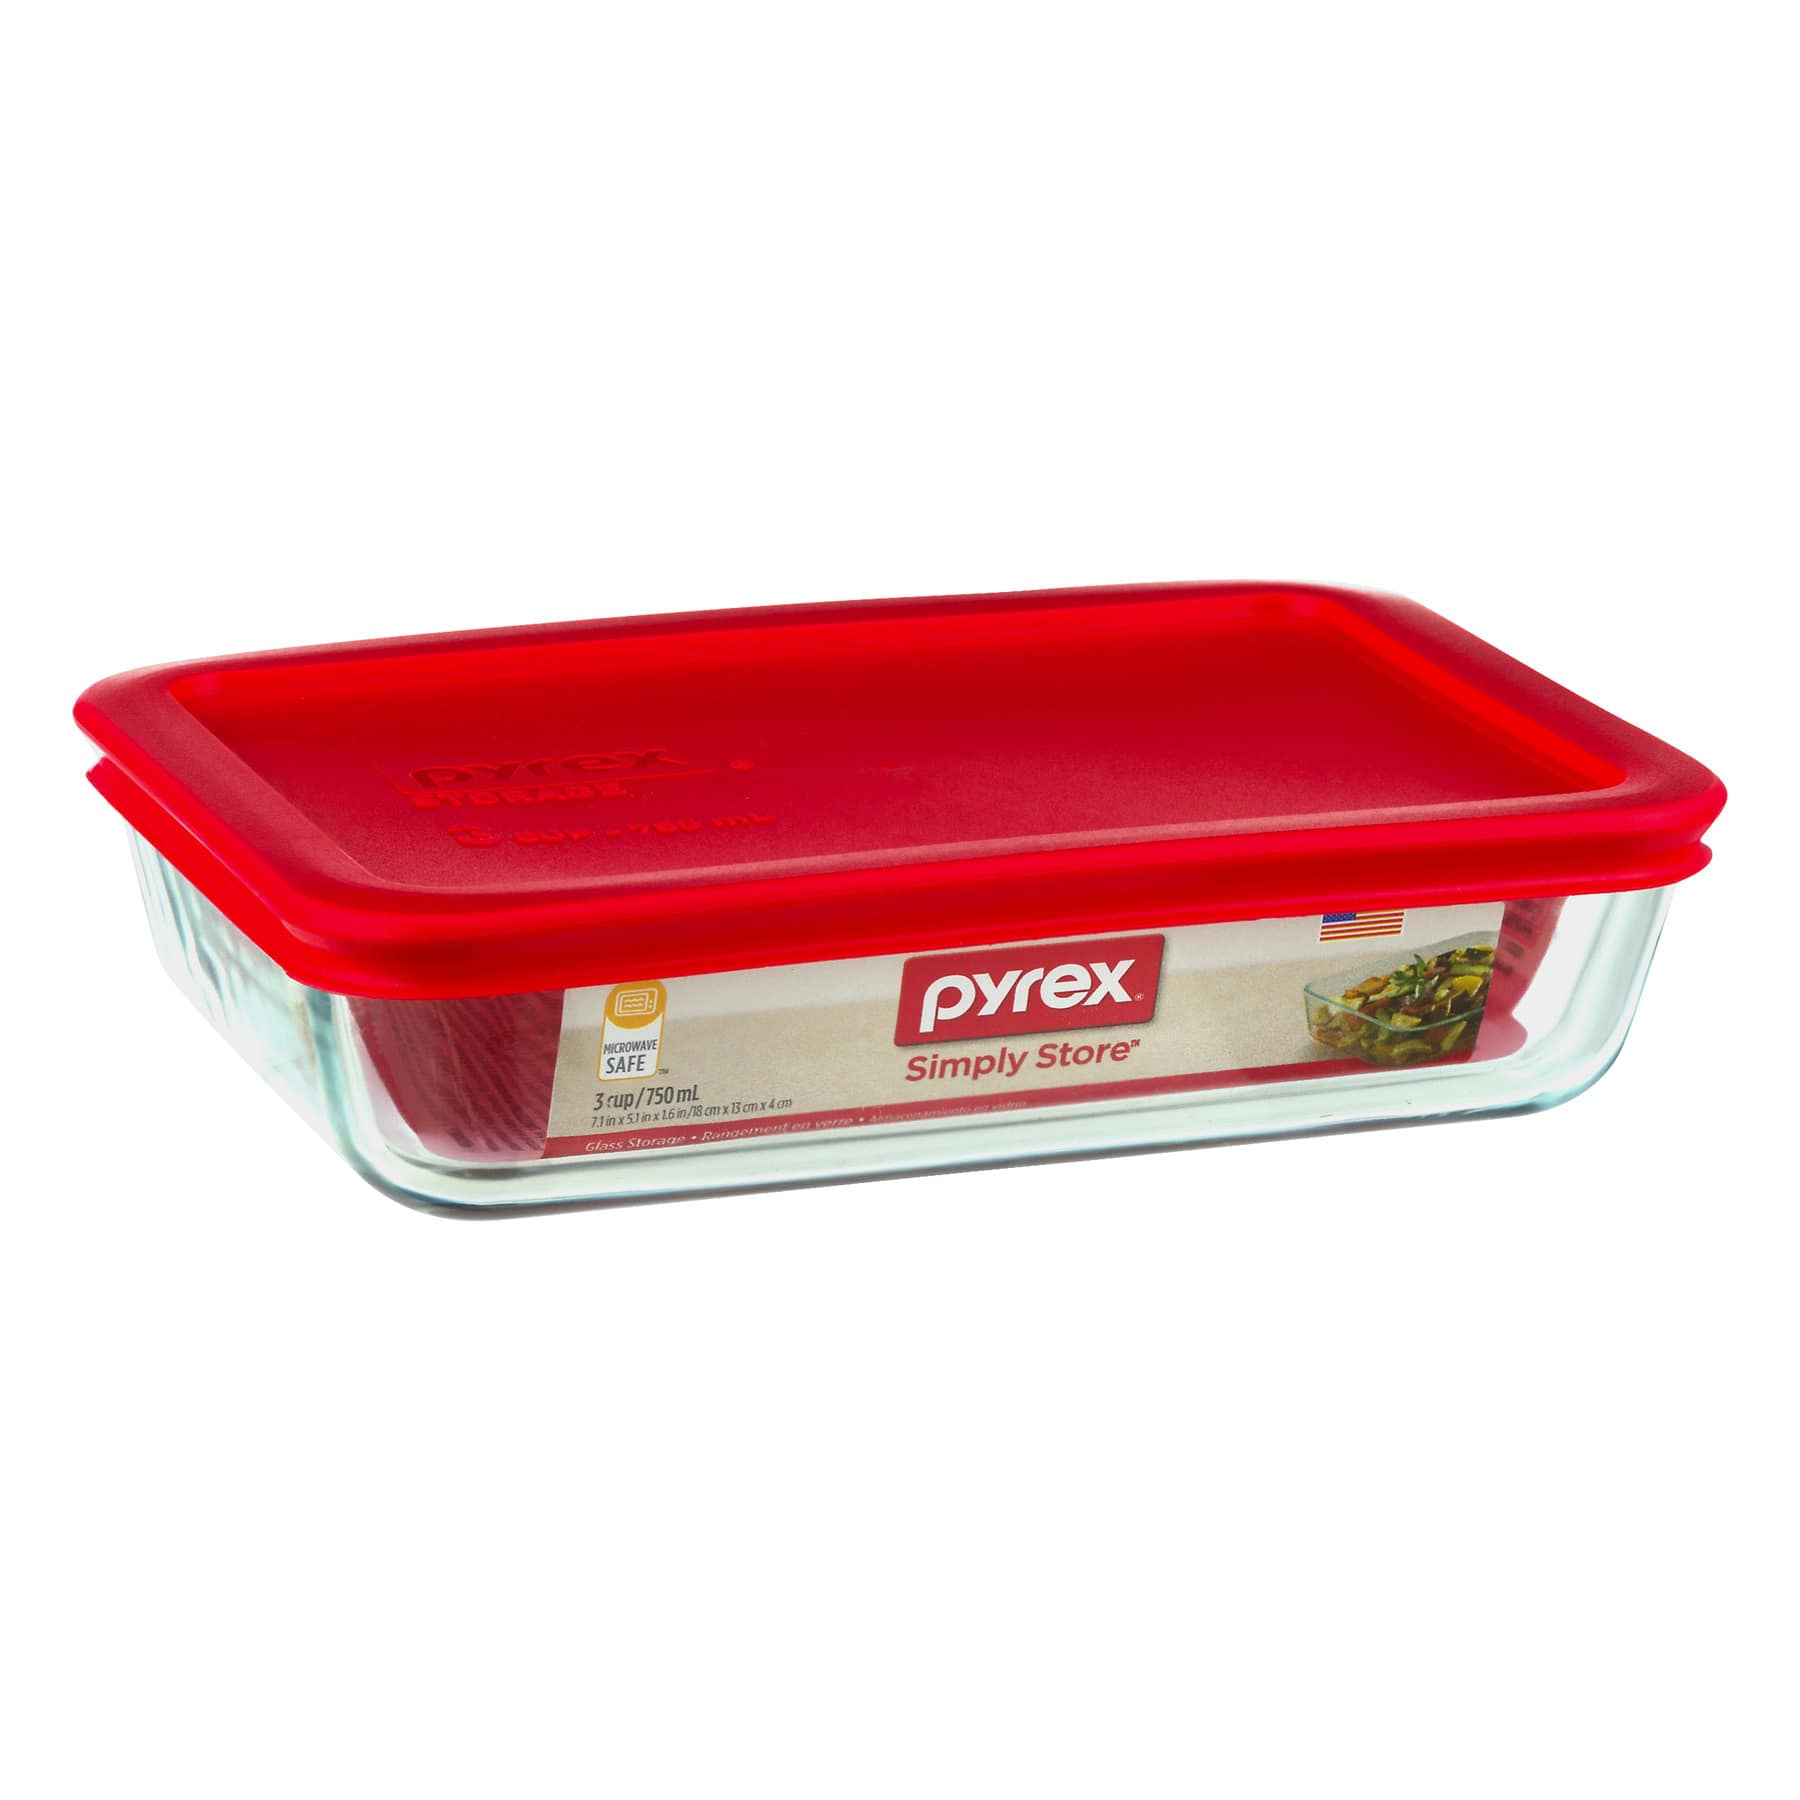 Pyrex Rectangular Food Storage, Glass, 3-Cup, Red for $4.87